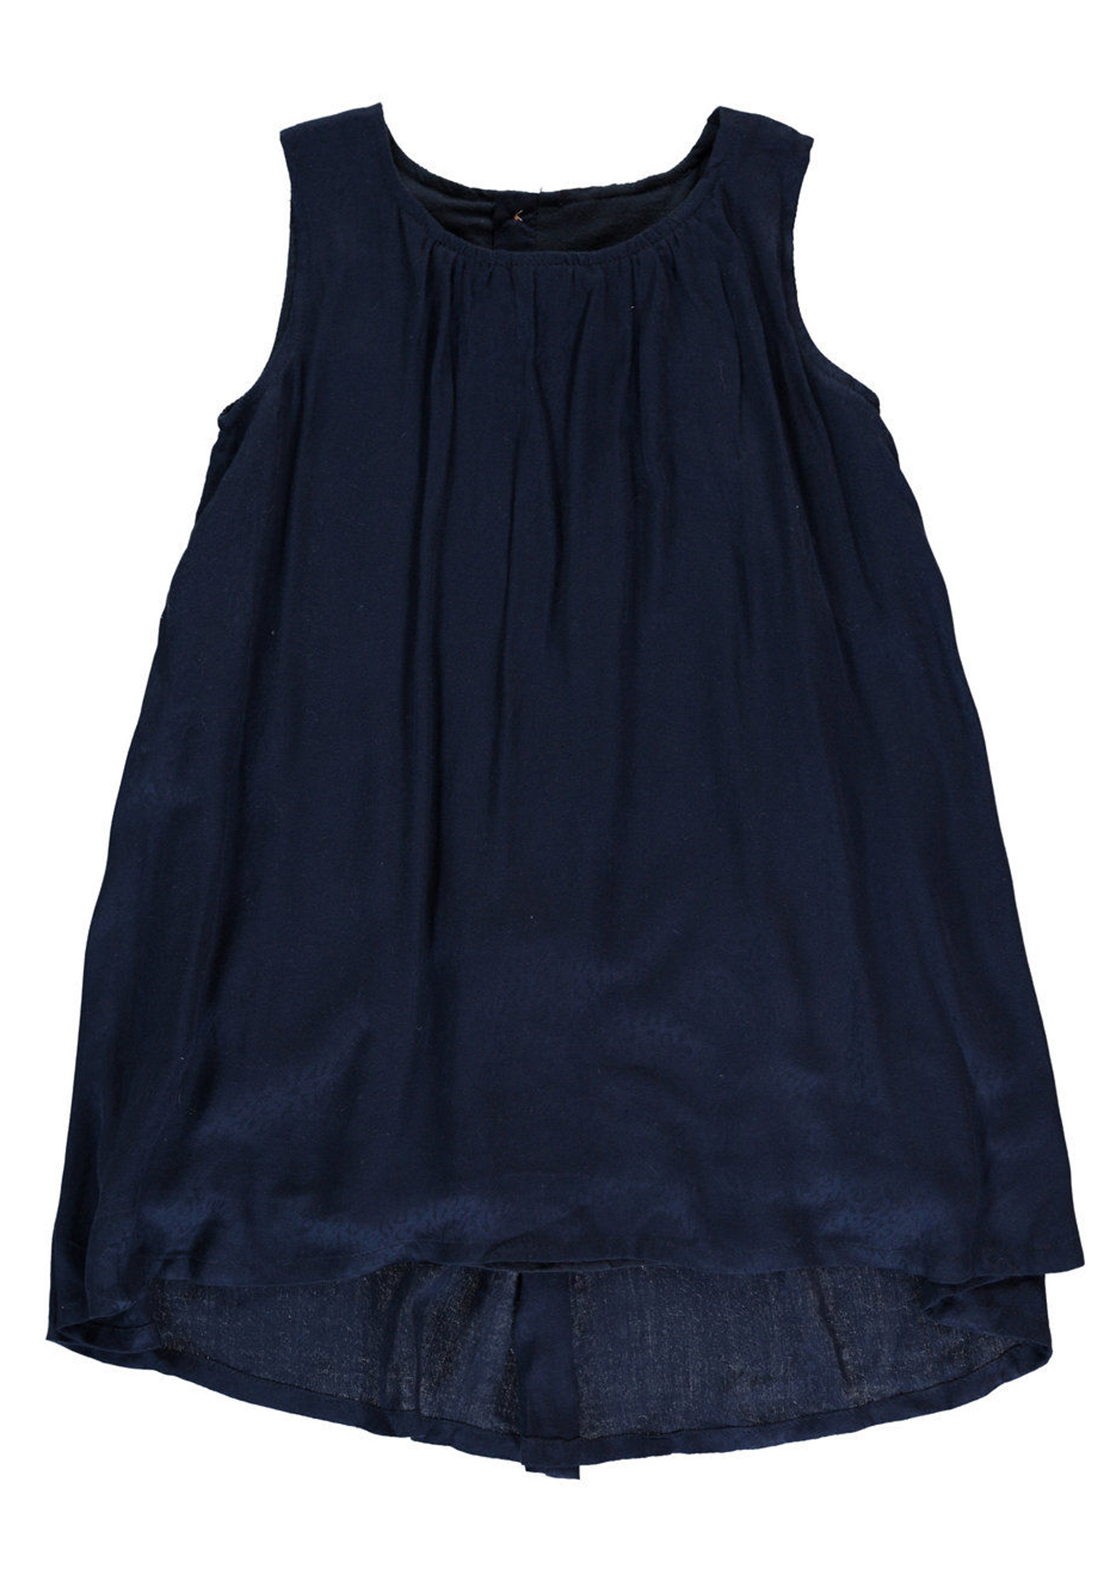 Name It Girls Jonna Dip Hem Dress, Navy